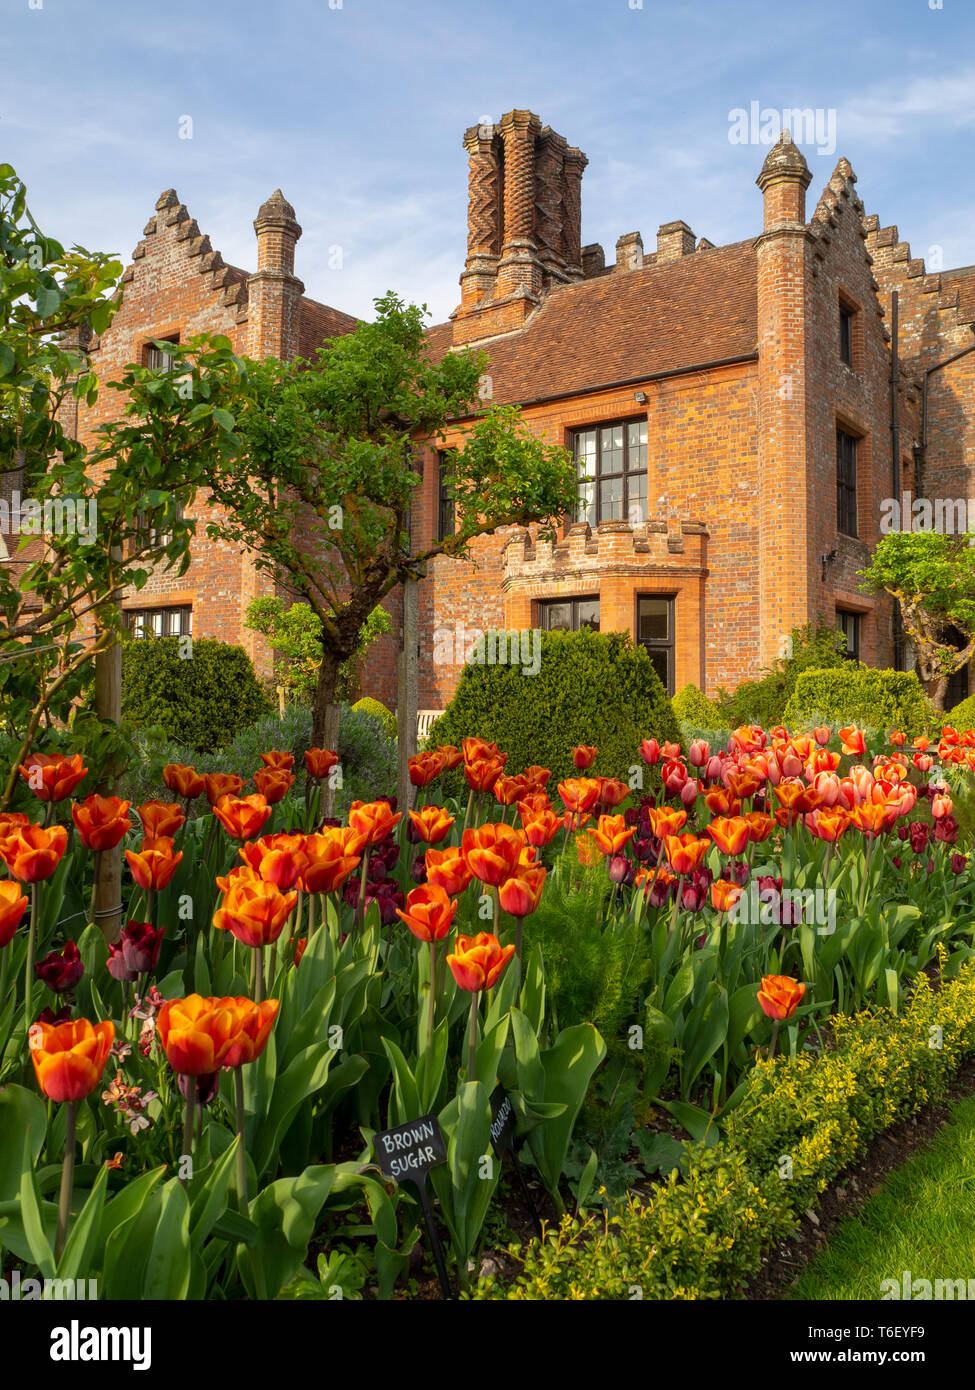 Chenies Manor House and Gardens in April showing colourful tulip borders. - Stock Image